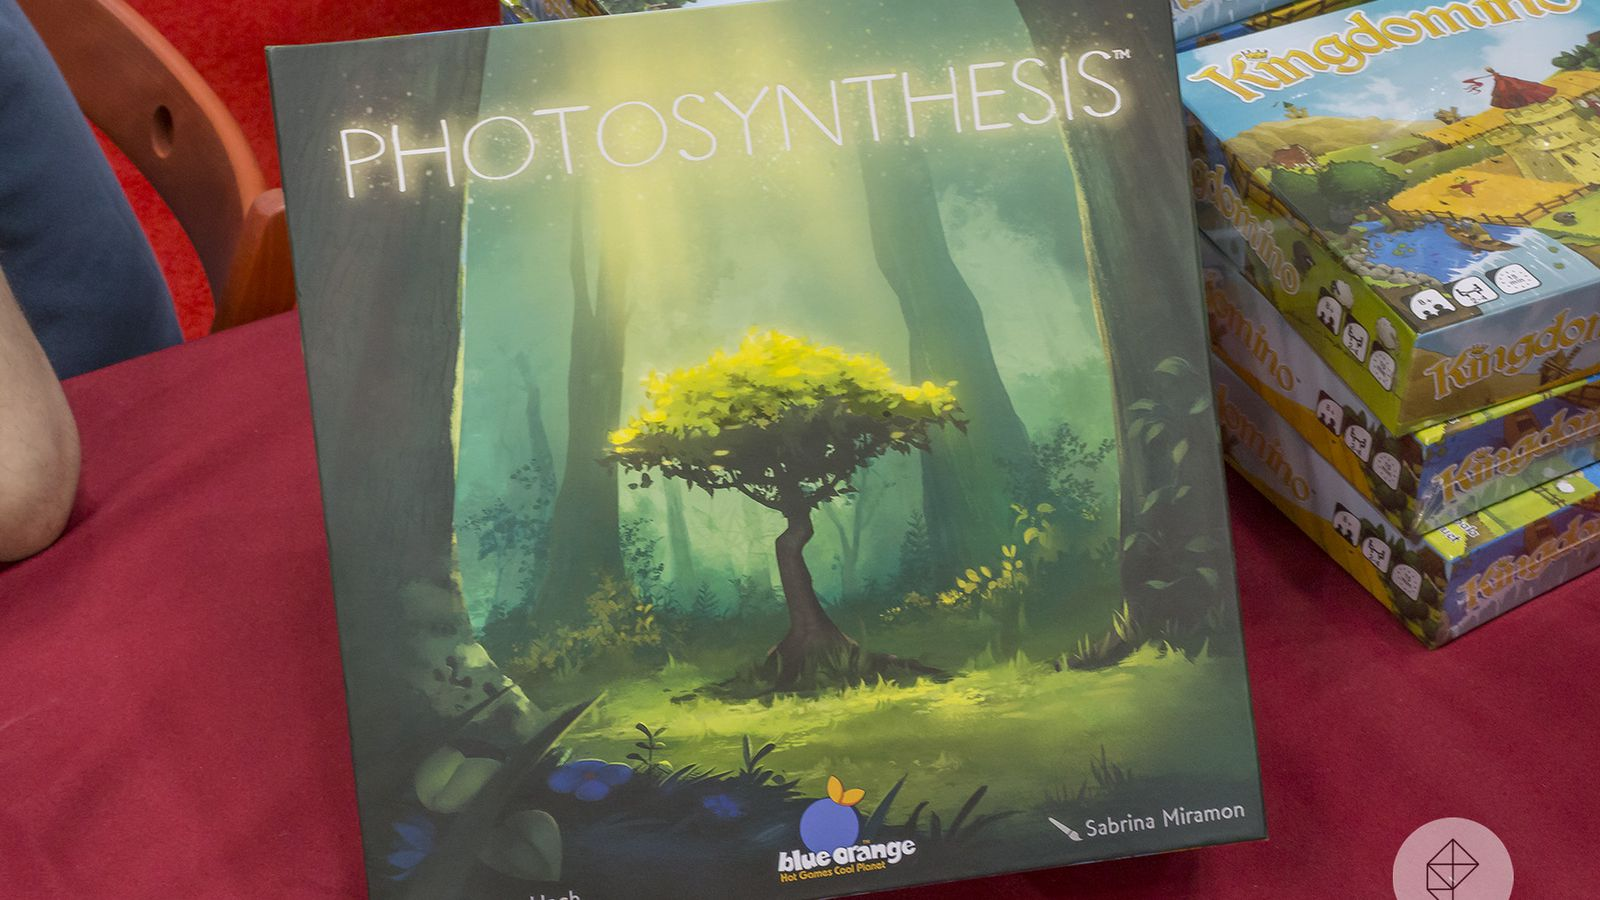 Photosynthesis is a visual and mechanical marvel - Polygonclockmenumore-arrownoyespoly-lt-wire-logo image